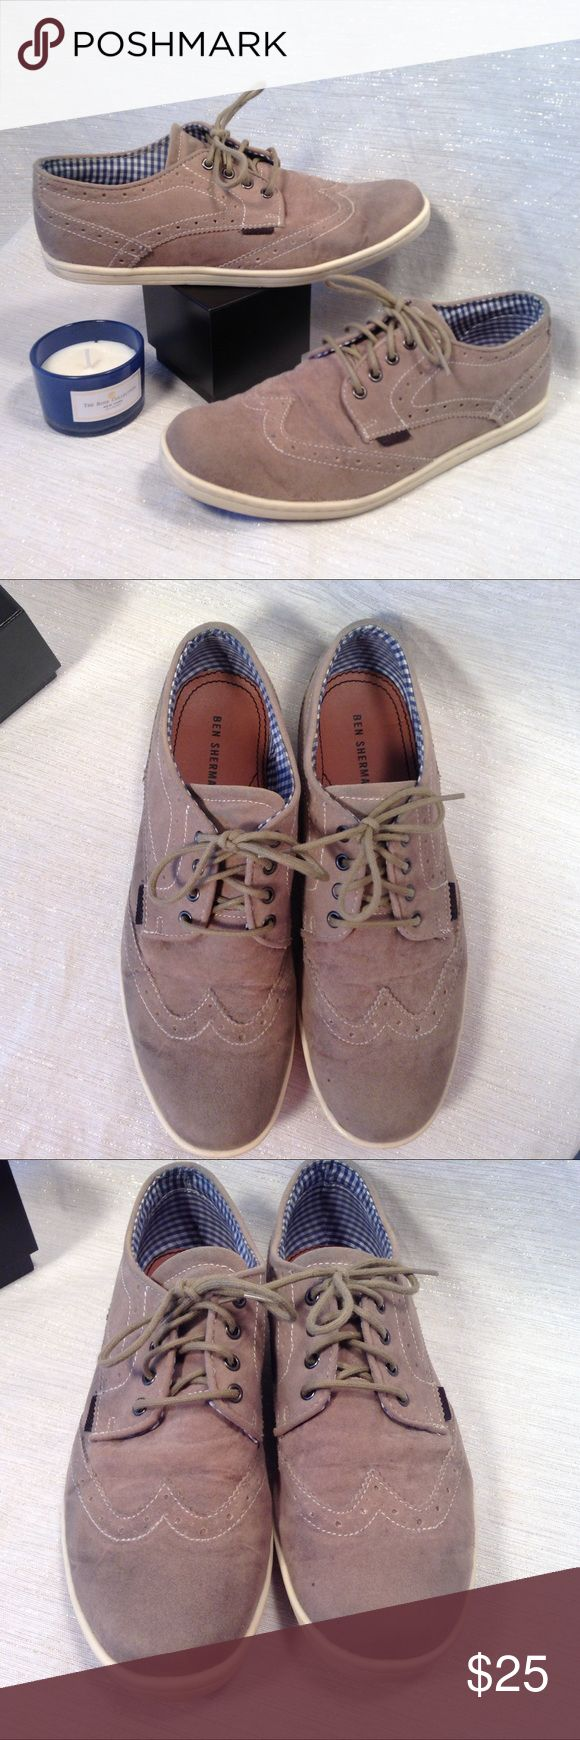 Ben Sherman Mens Brogue Sneakers/Shoe Size 8 Natural color oxford wing tip style dress sneaker is perfect for guys that need a dress shoe but are more on the casual side. Wear them with slacks, jeans or shorts. Ben Sherman Shoes Flats & Loafers